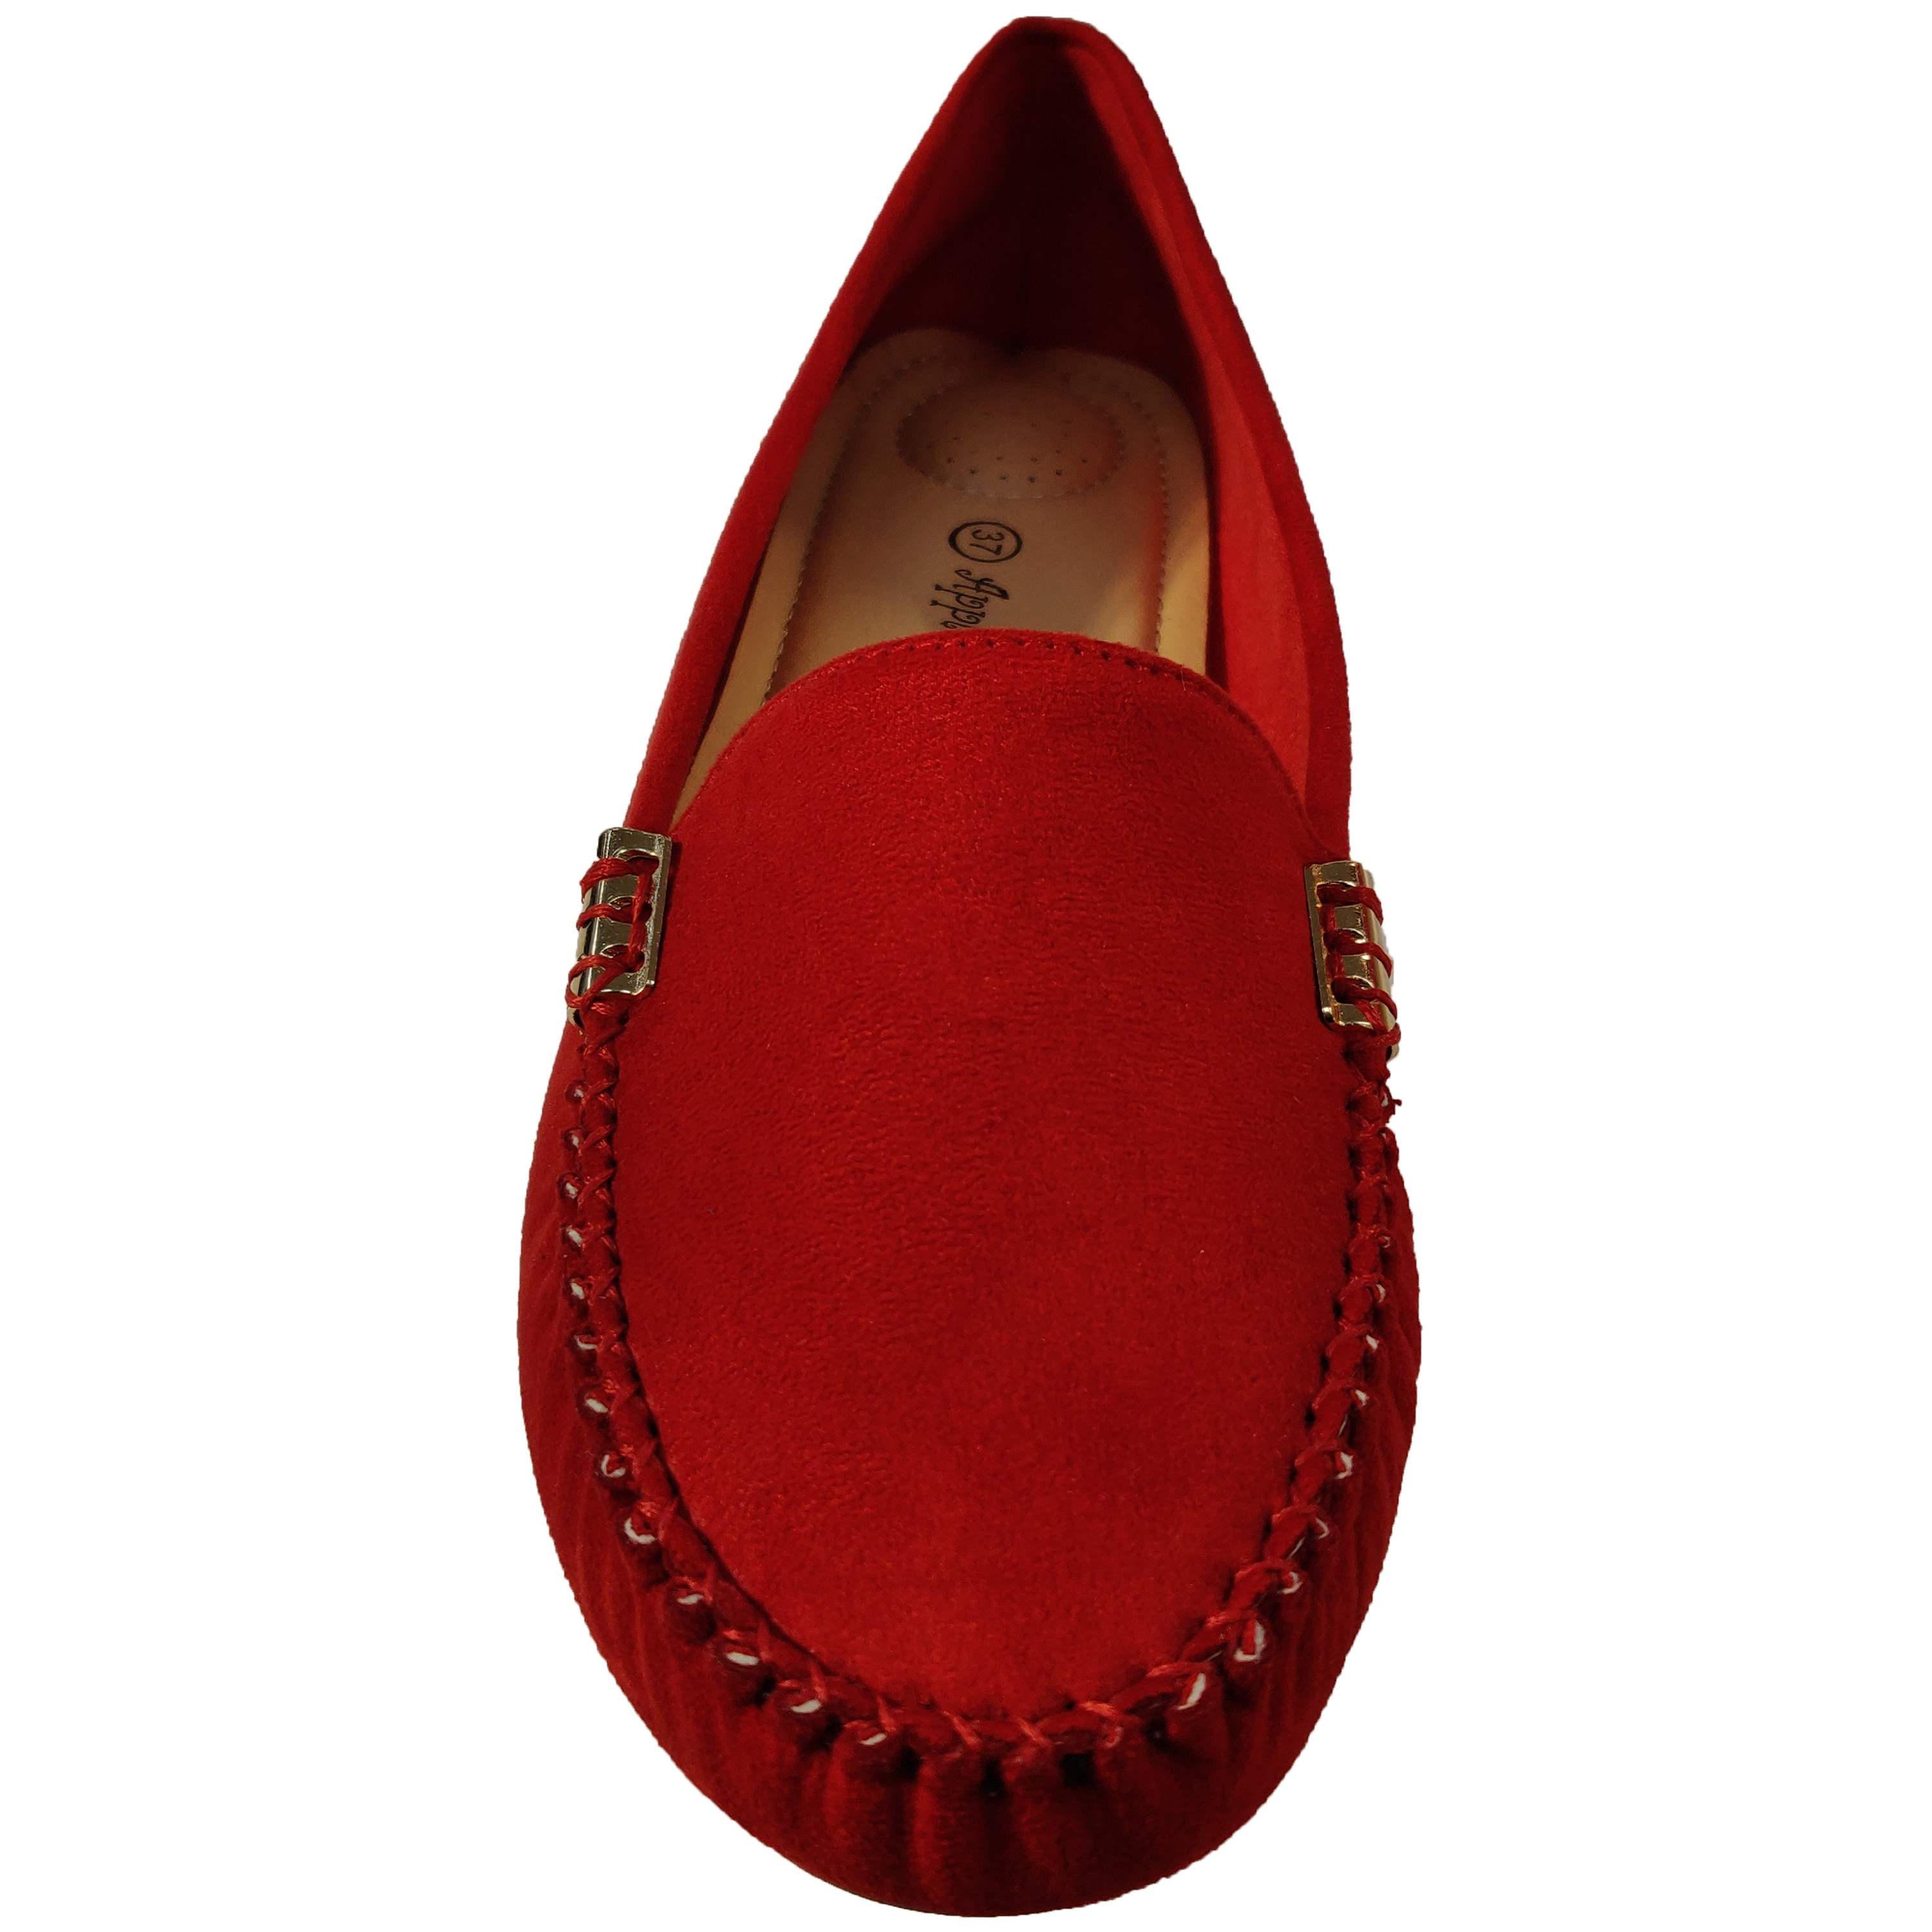 Ladies-Moccasins-Slip-On-Shoes-Ballerina-Womens-Suede-Look-Loafers-Flat-Work-New thumbnail 10